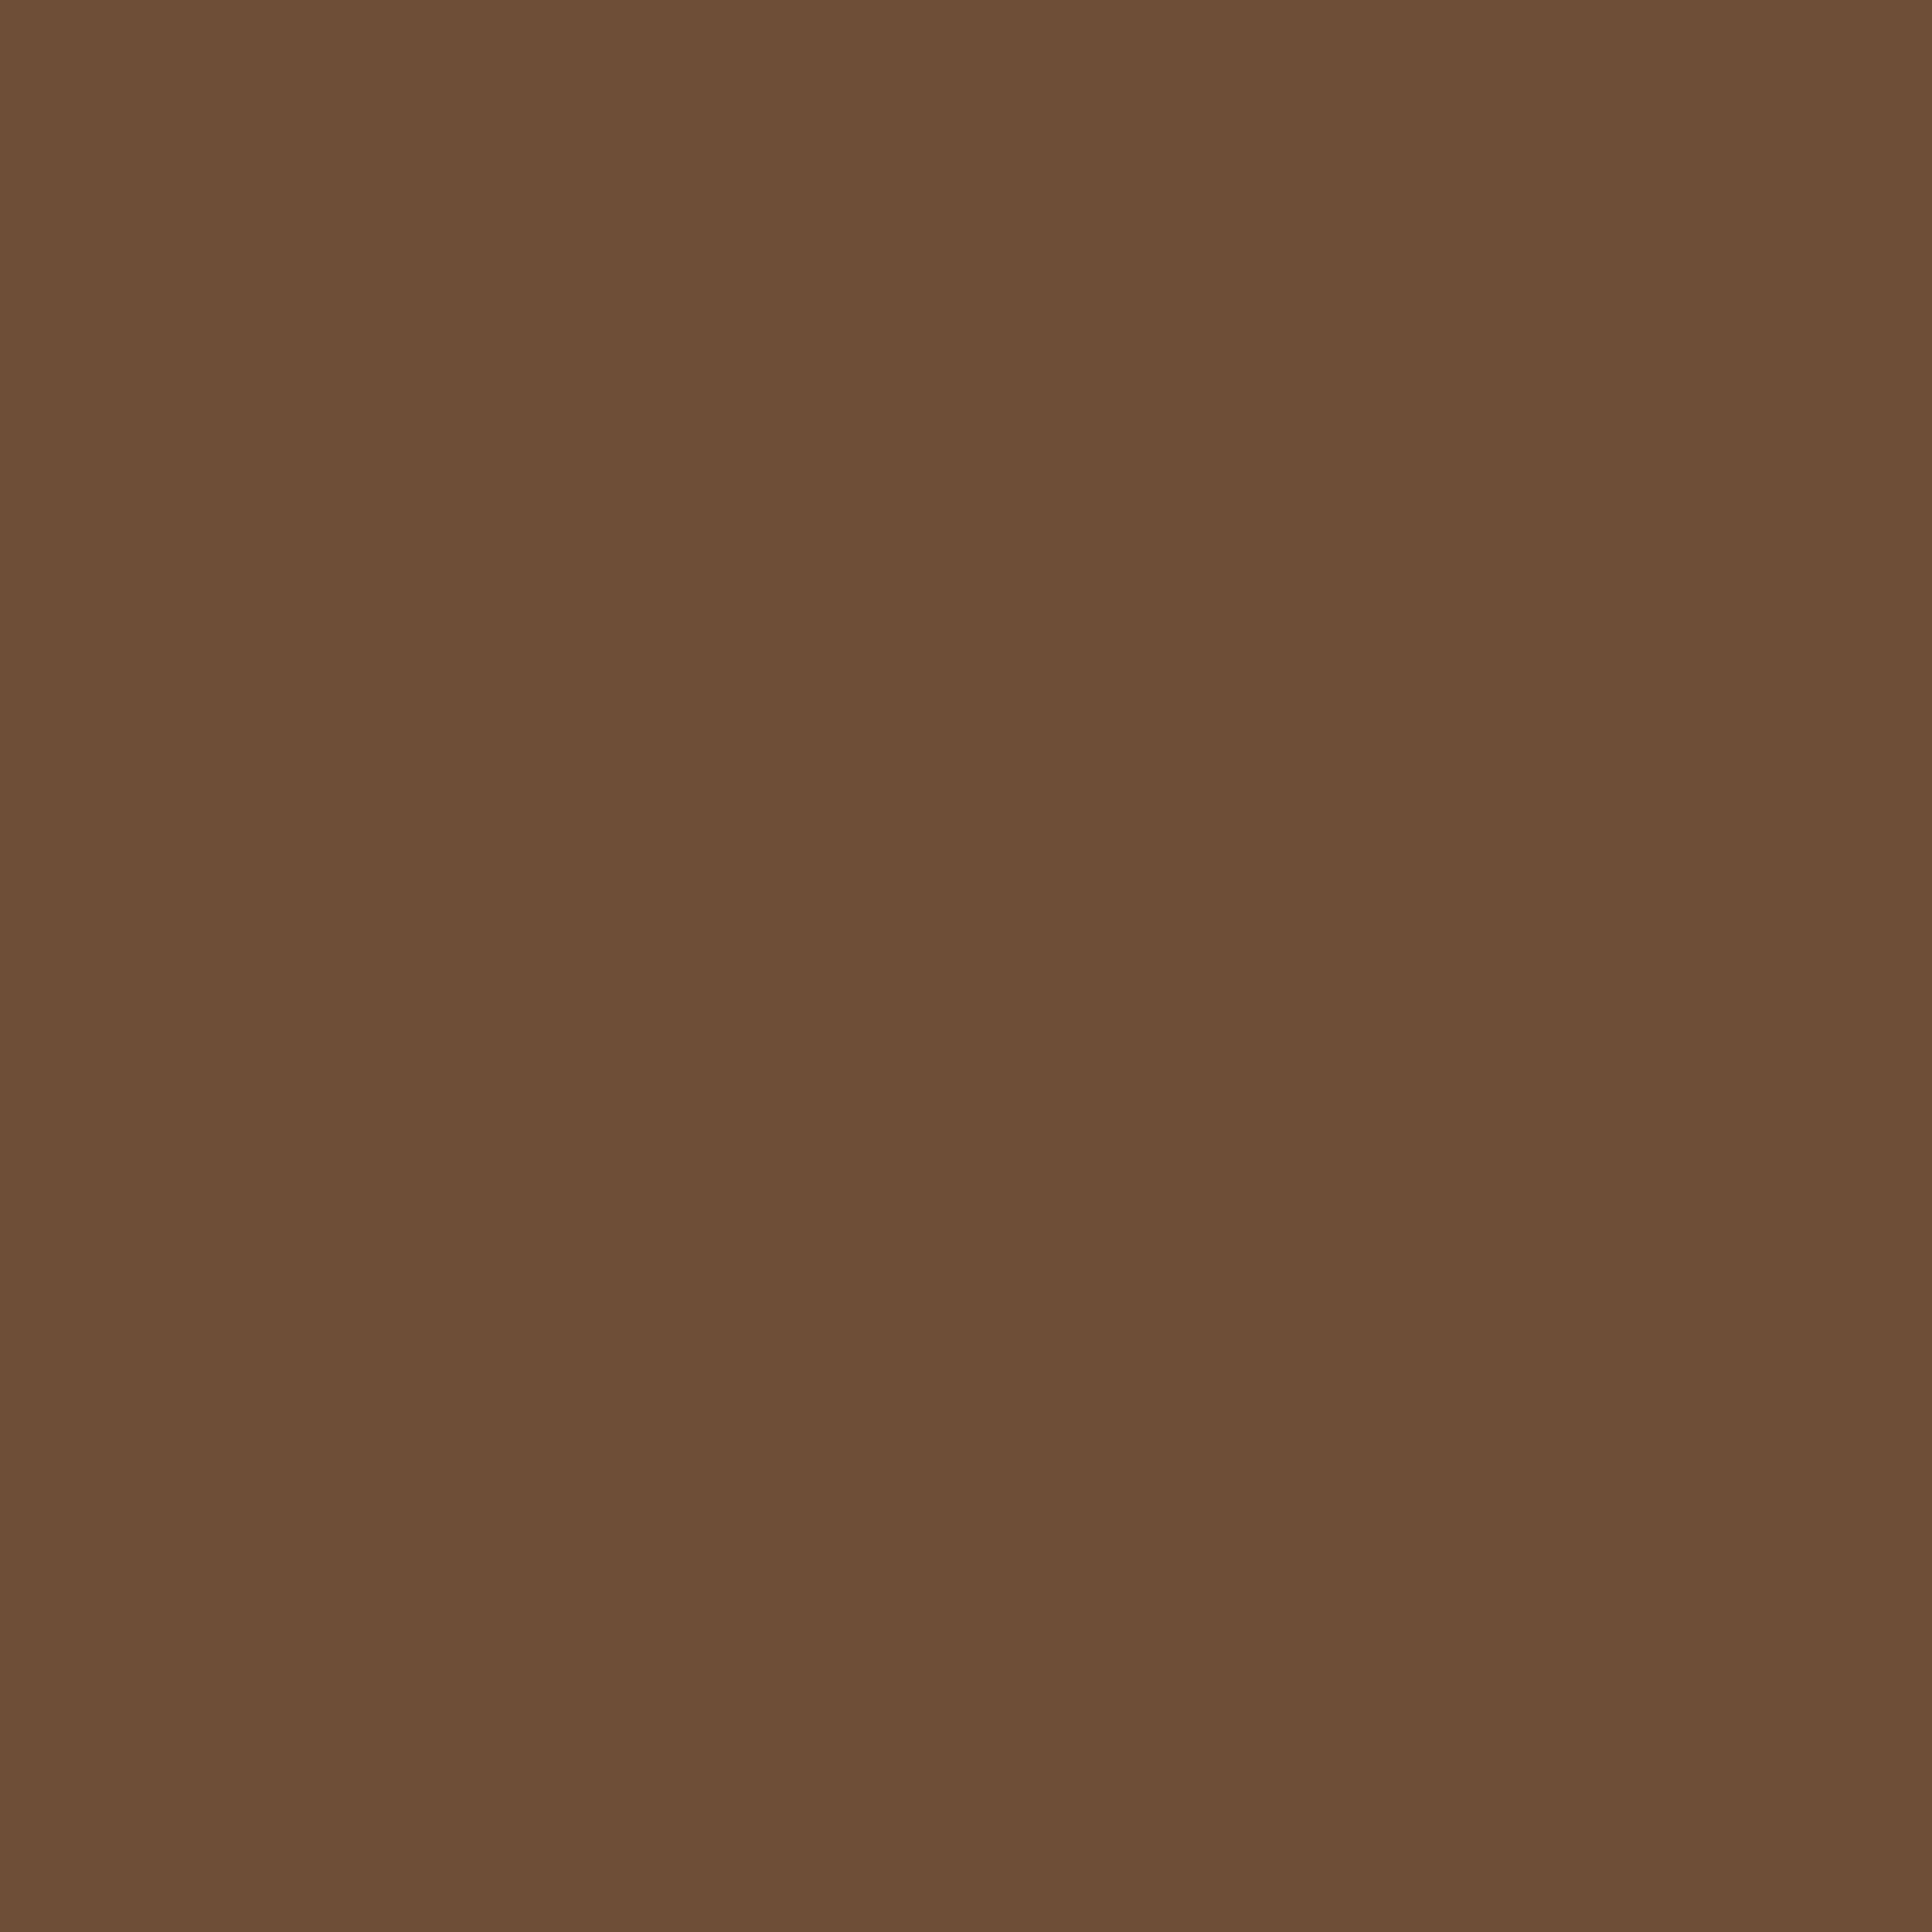 2048x2048 Tuscan Brown Solid Color Background